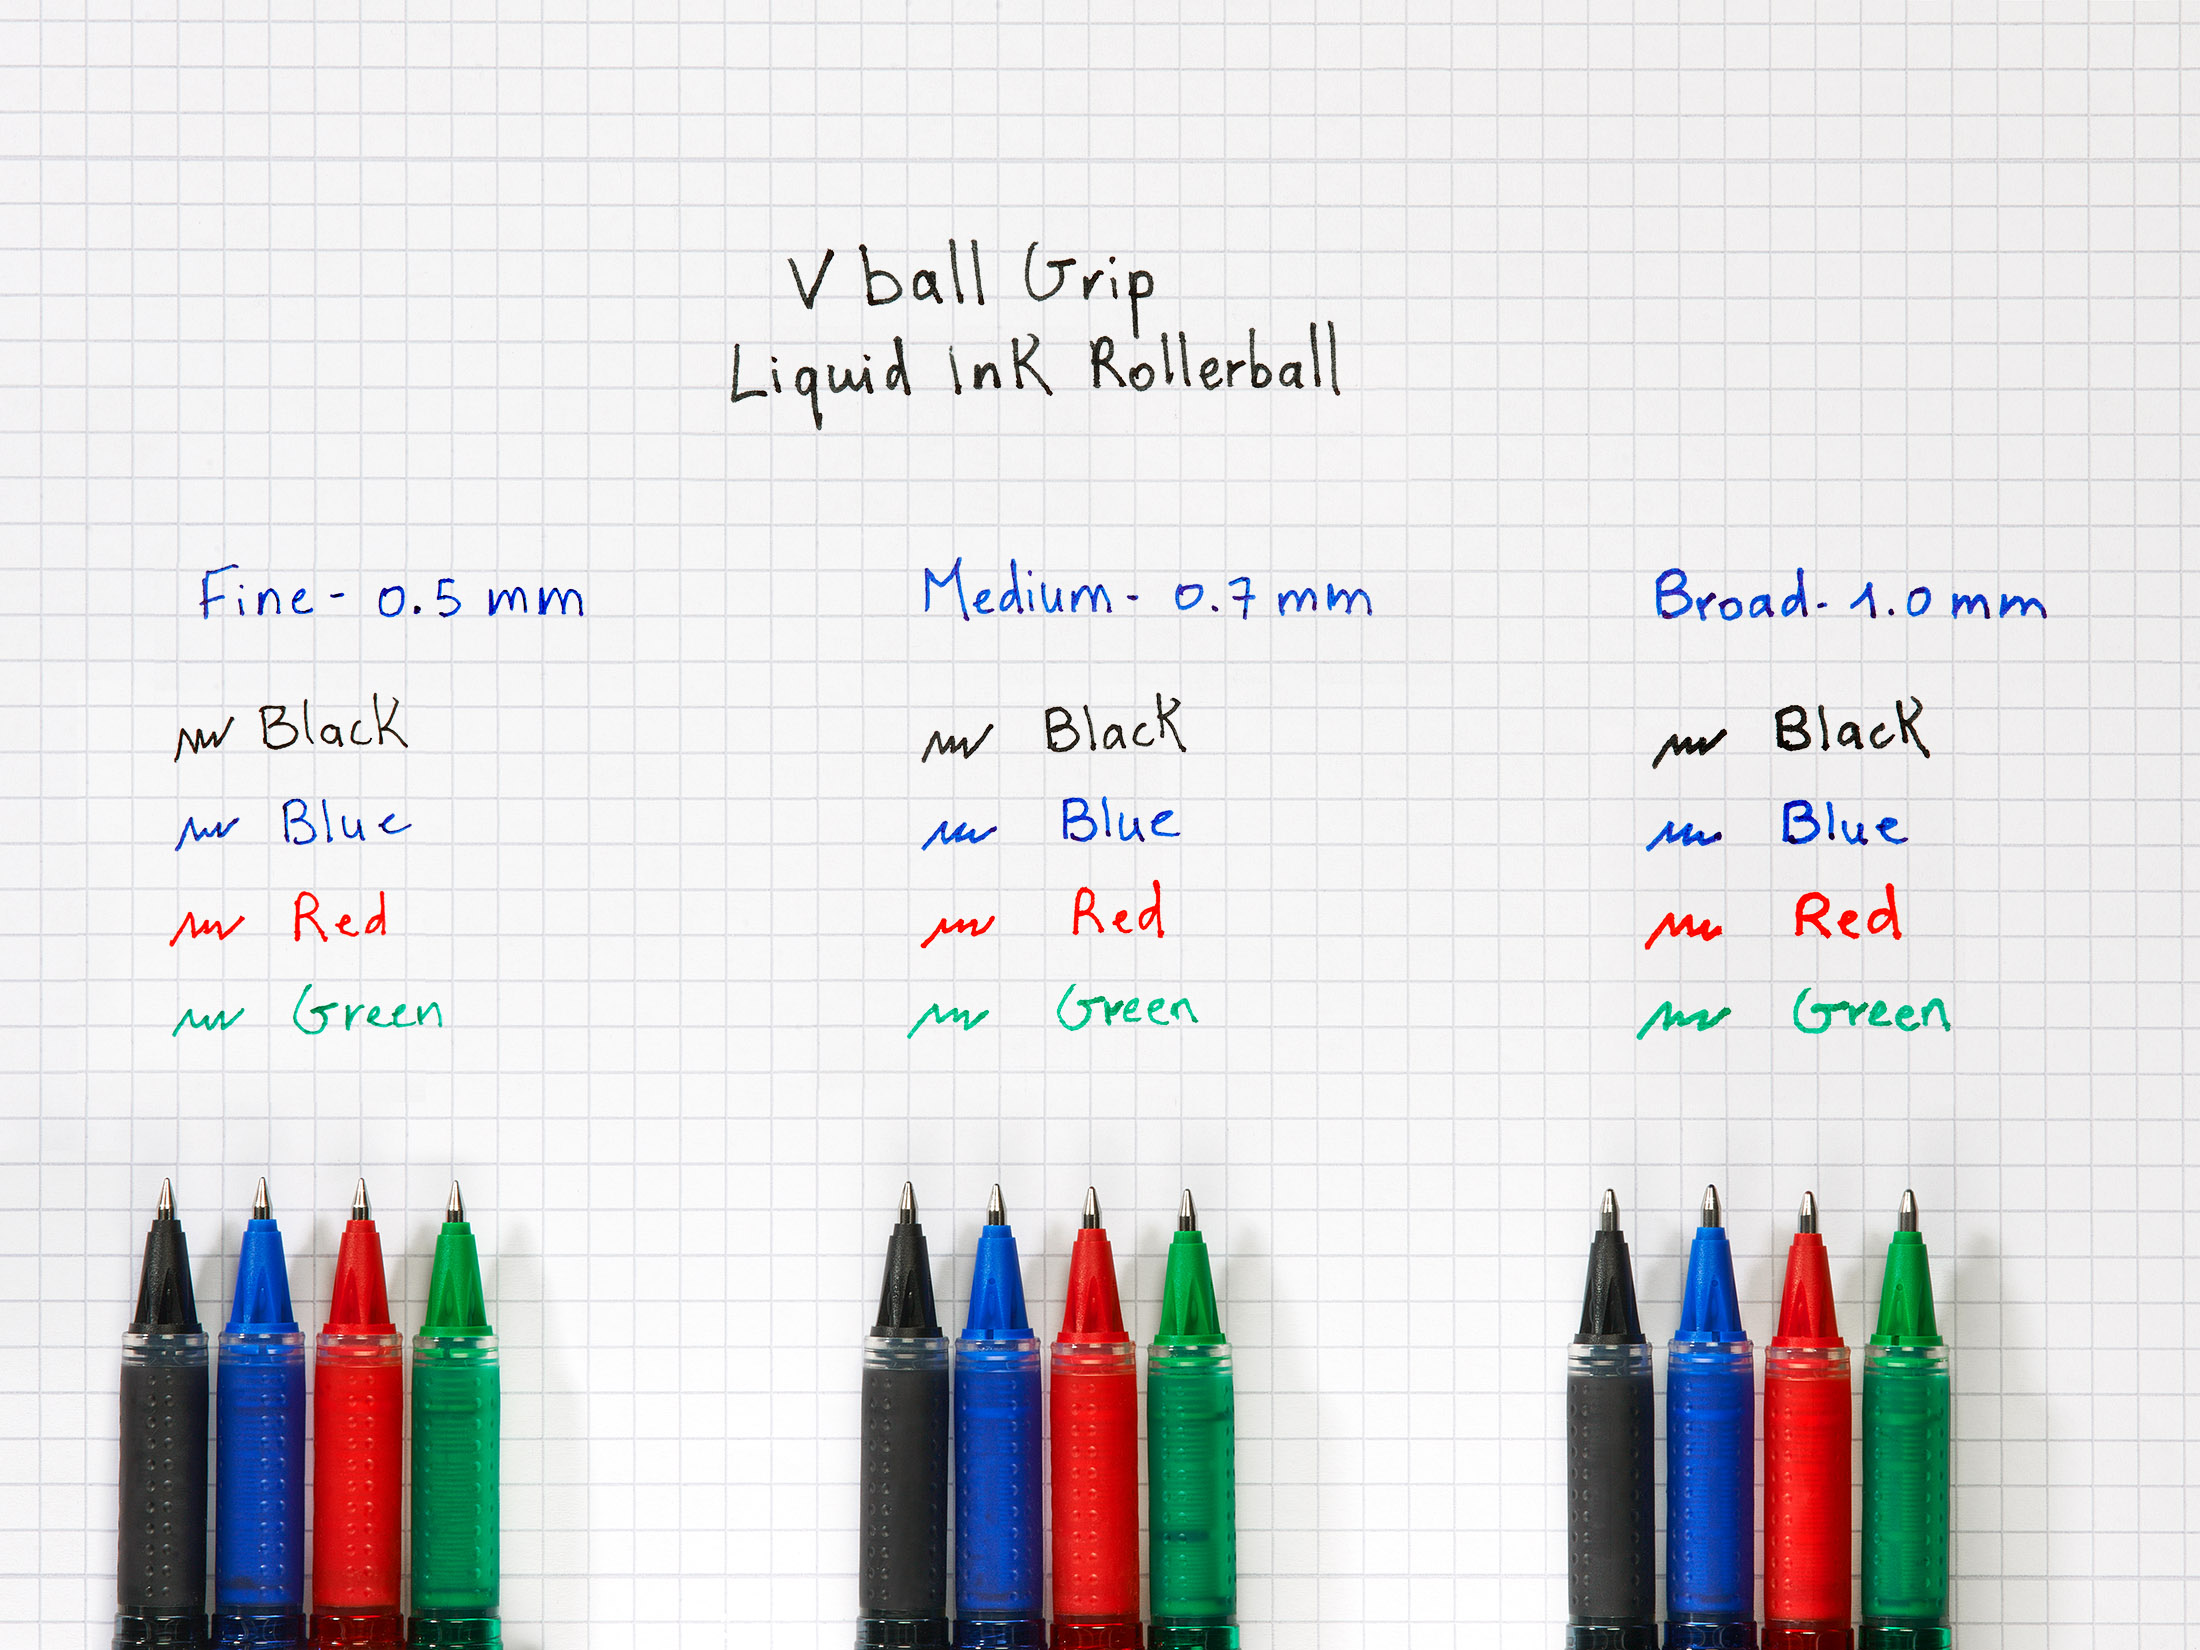 Pilot Vball Vbg5 Rollerball Pen With Rubber Grip 05mm Tip 03mm Rollarball Fountain Diagram A Line Blue Ref Blnvbg5 03 Pack 12